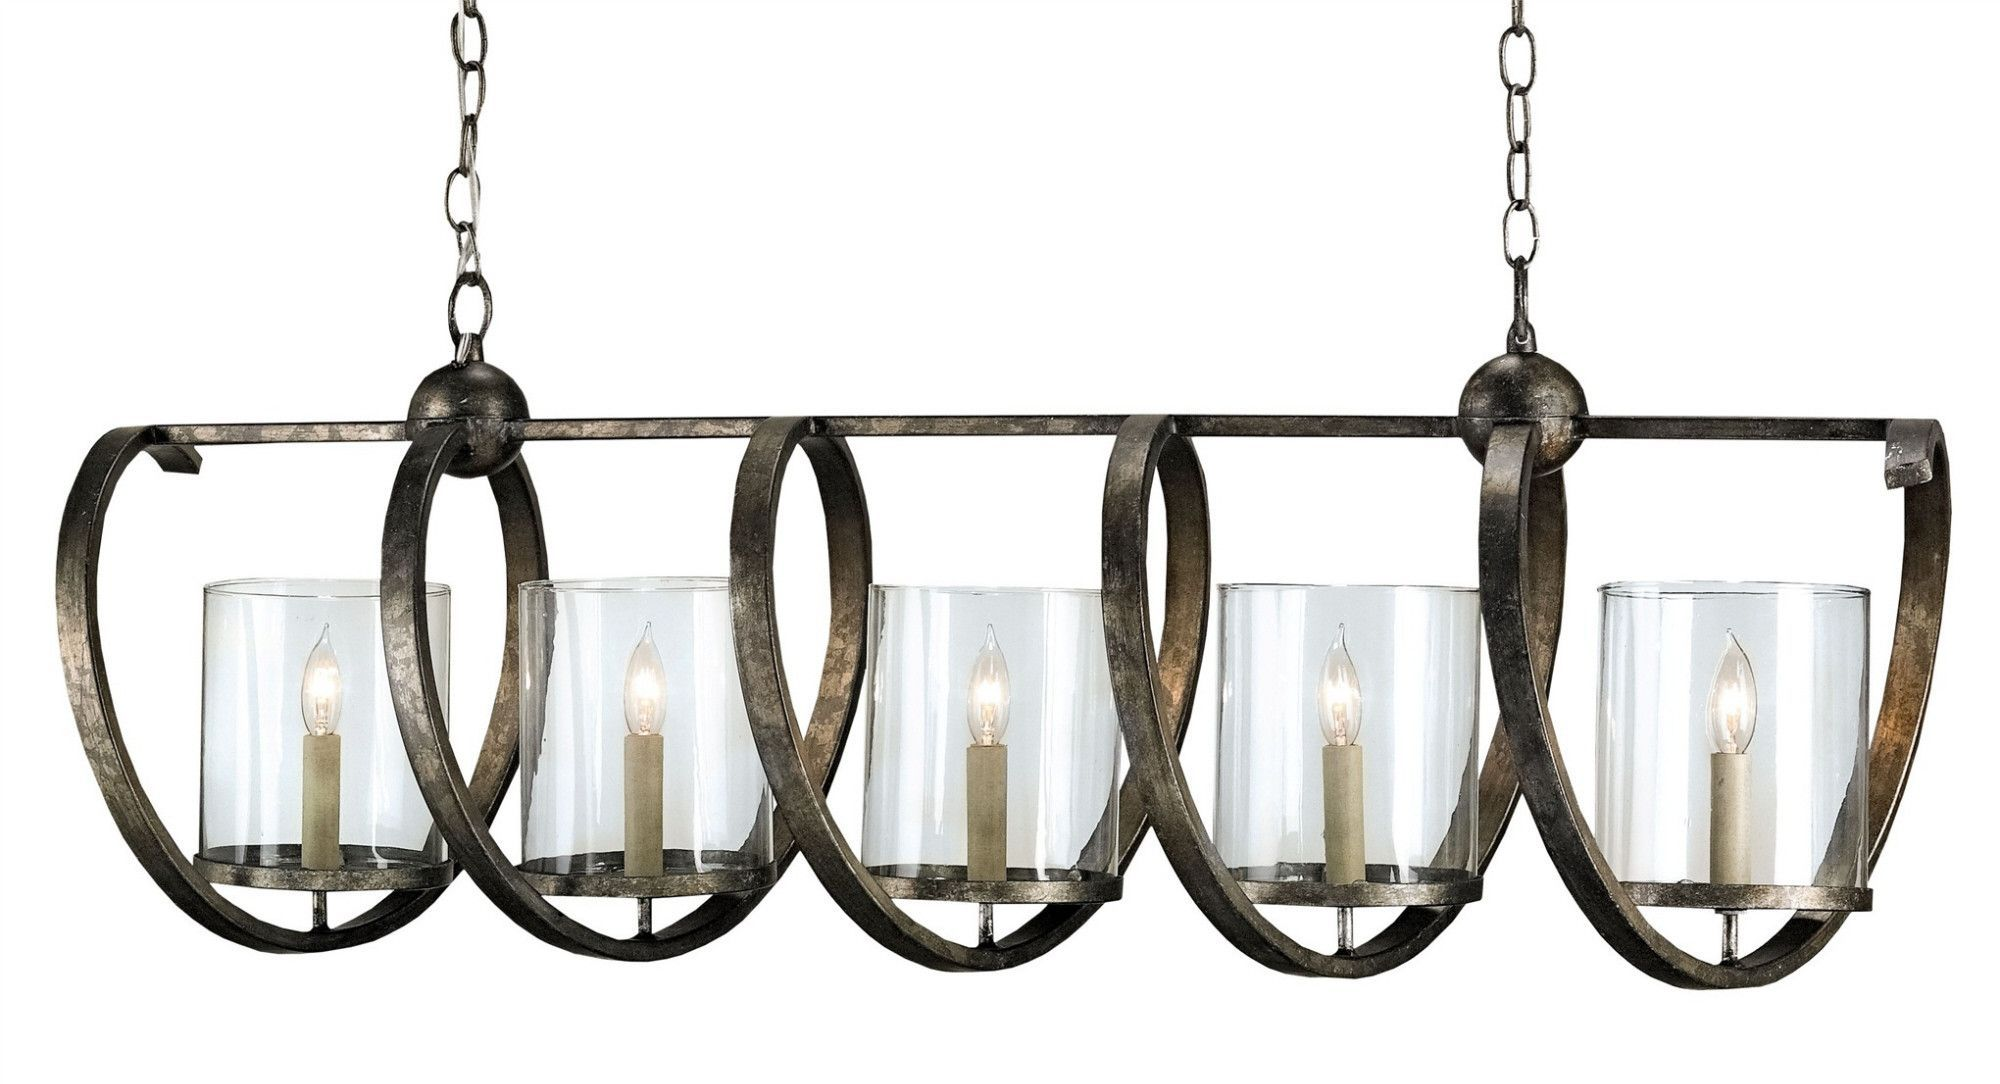 Maximus Rectangular Chandelier design by Currey & Company ...